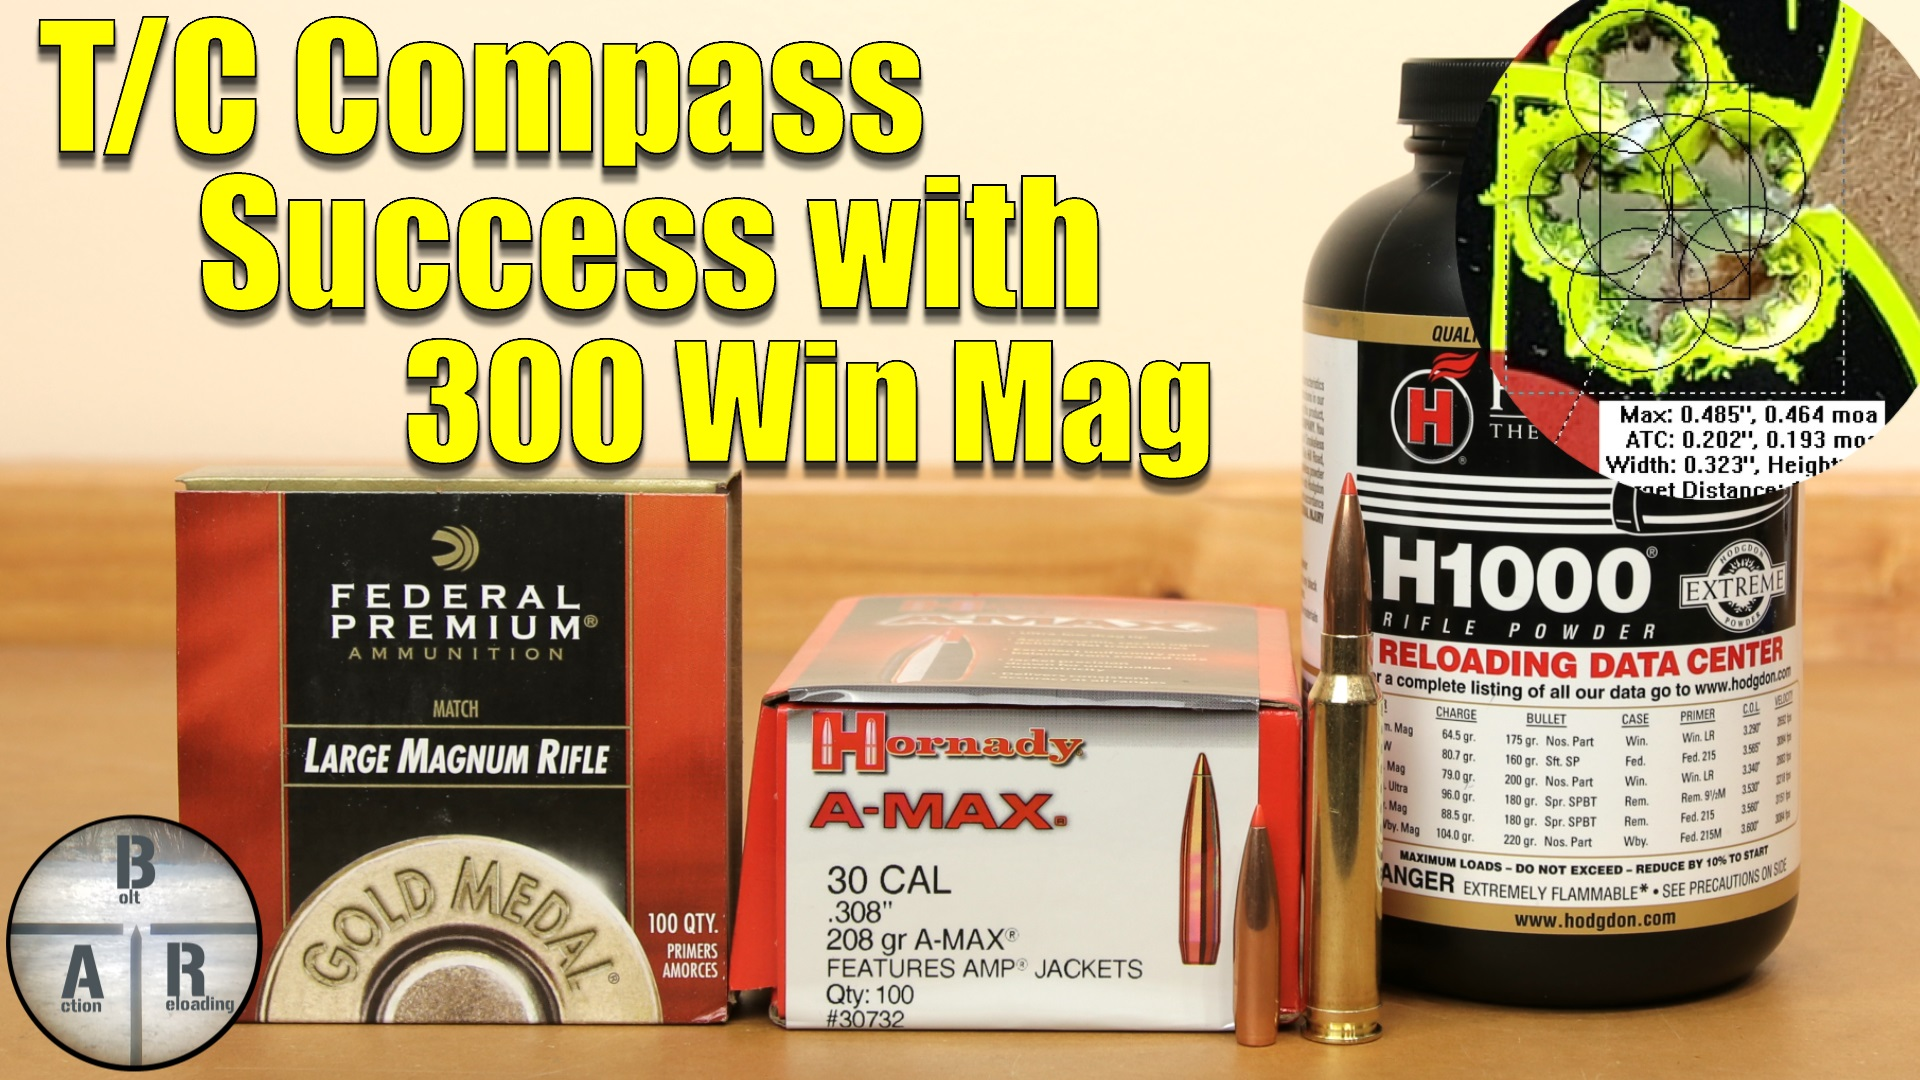 6mm Creedmoor - Hornady 108 ELD-M Match with Alliant Reloder